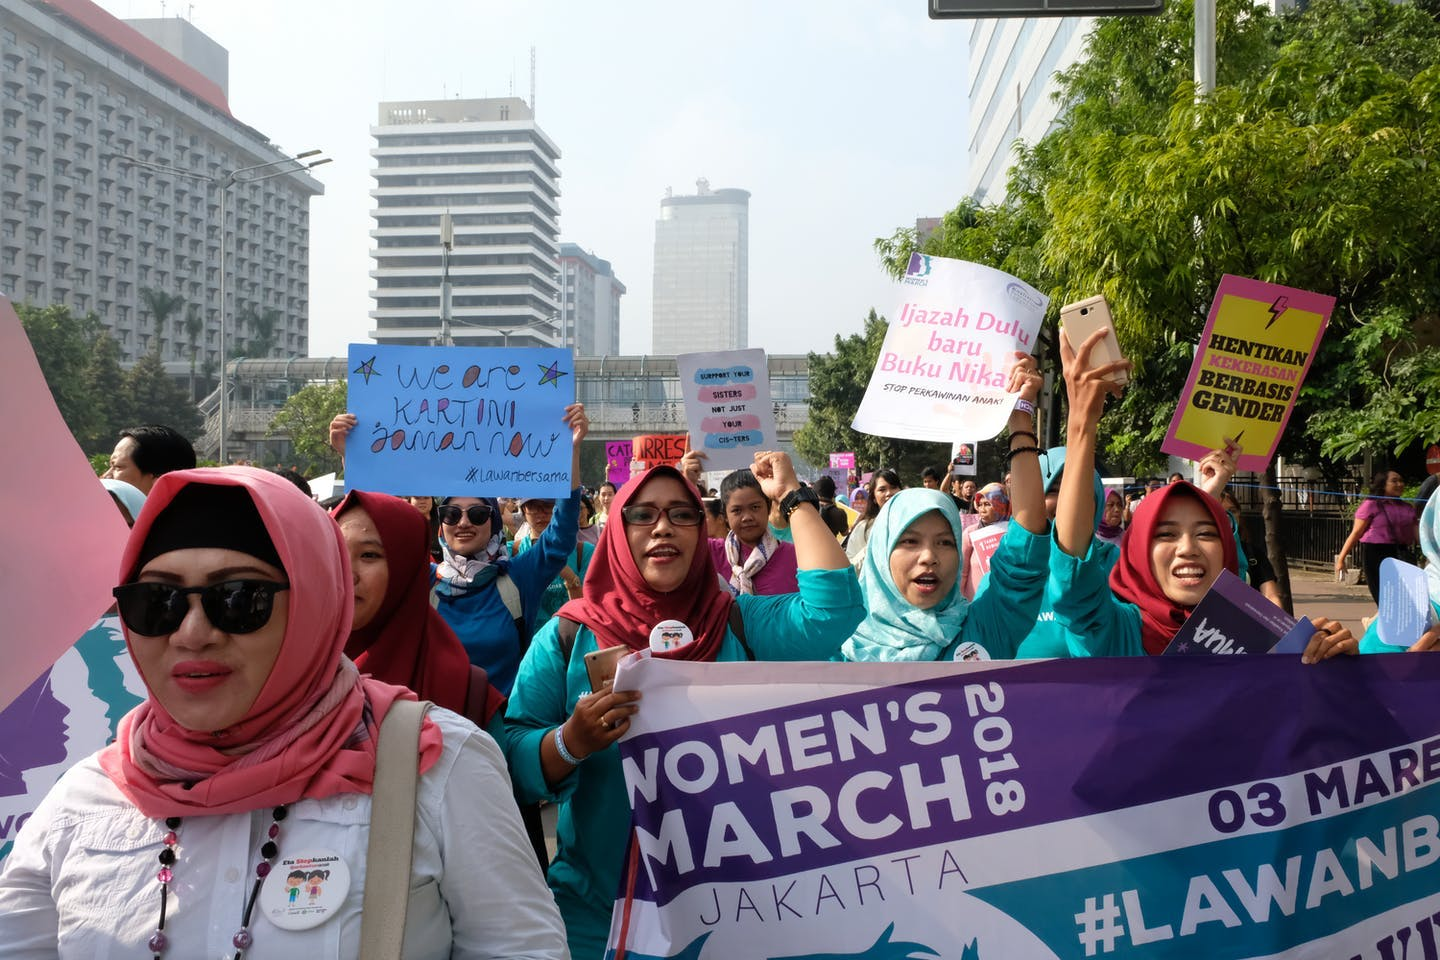 Women marching against gender-based violence in 2018